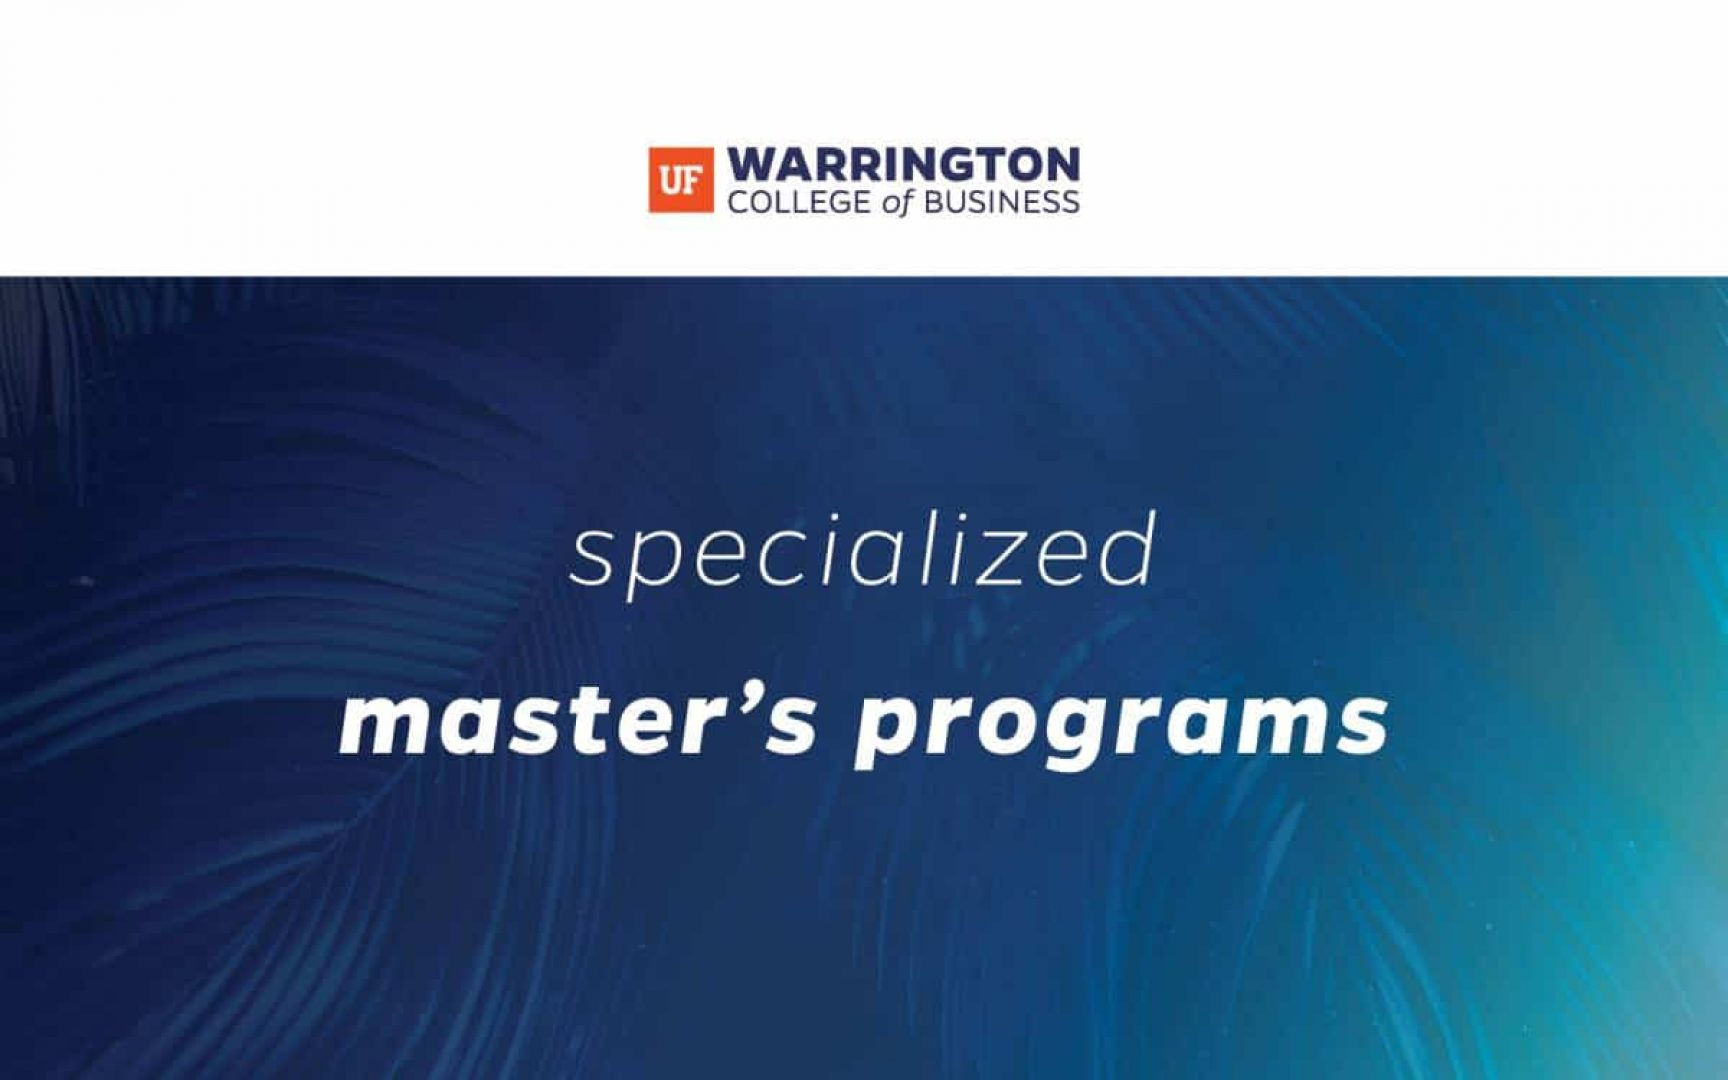 Warrington College of Business Specialized Mater's Programs